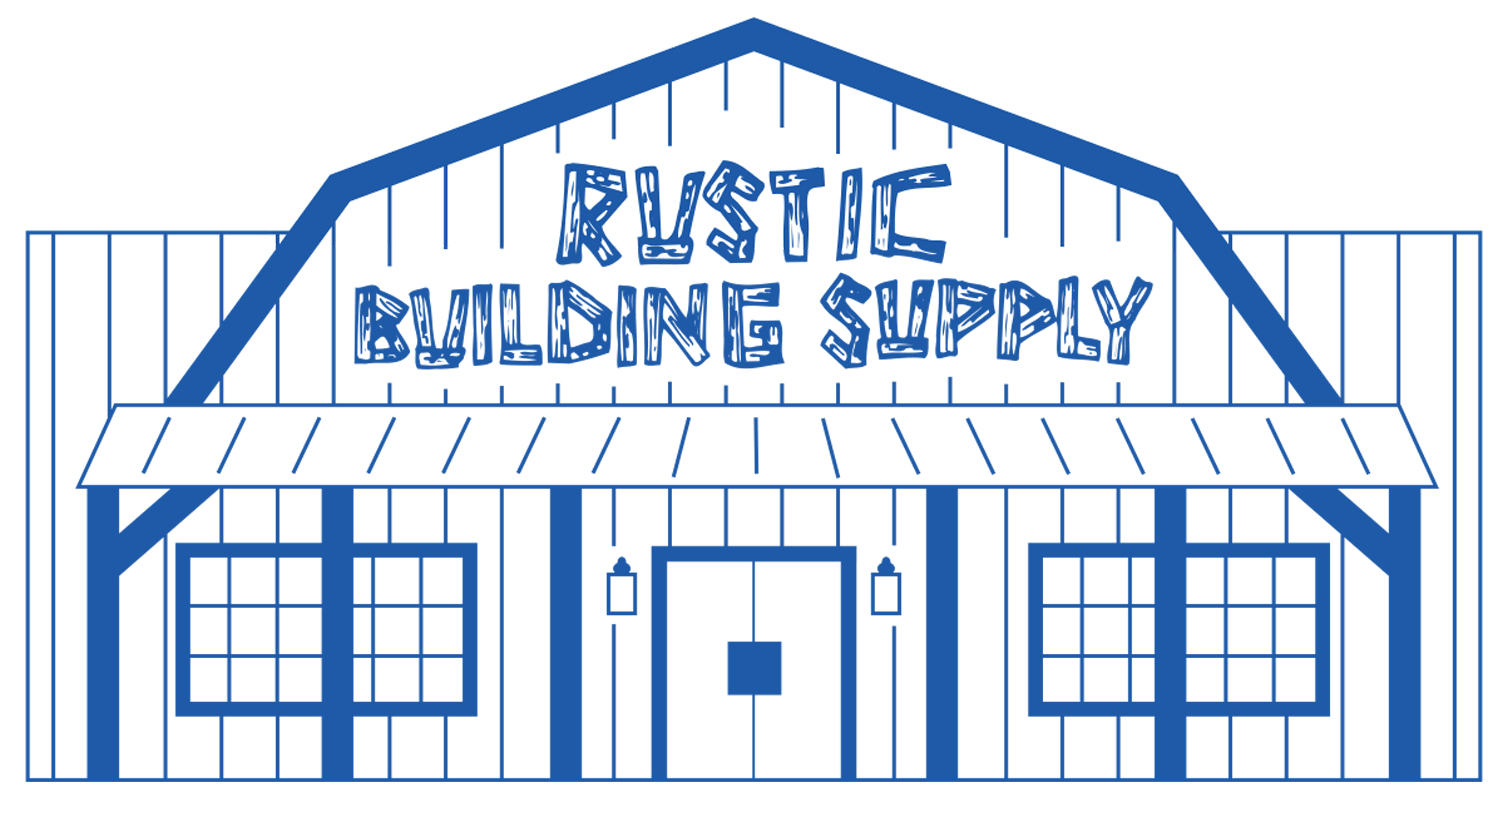 rustic building supply